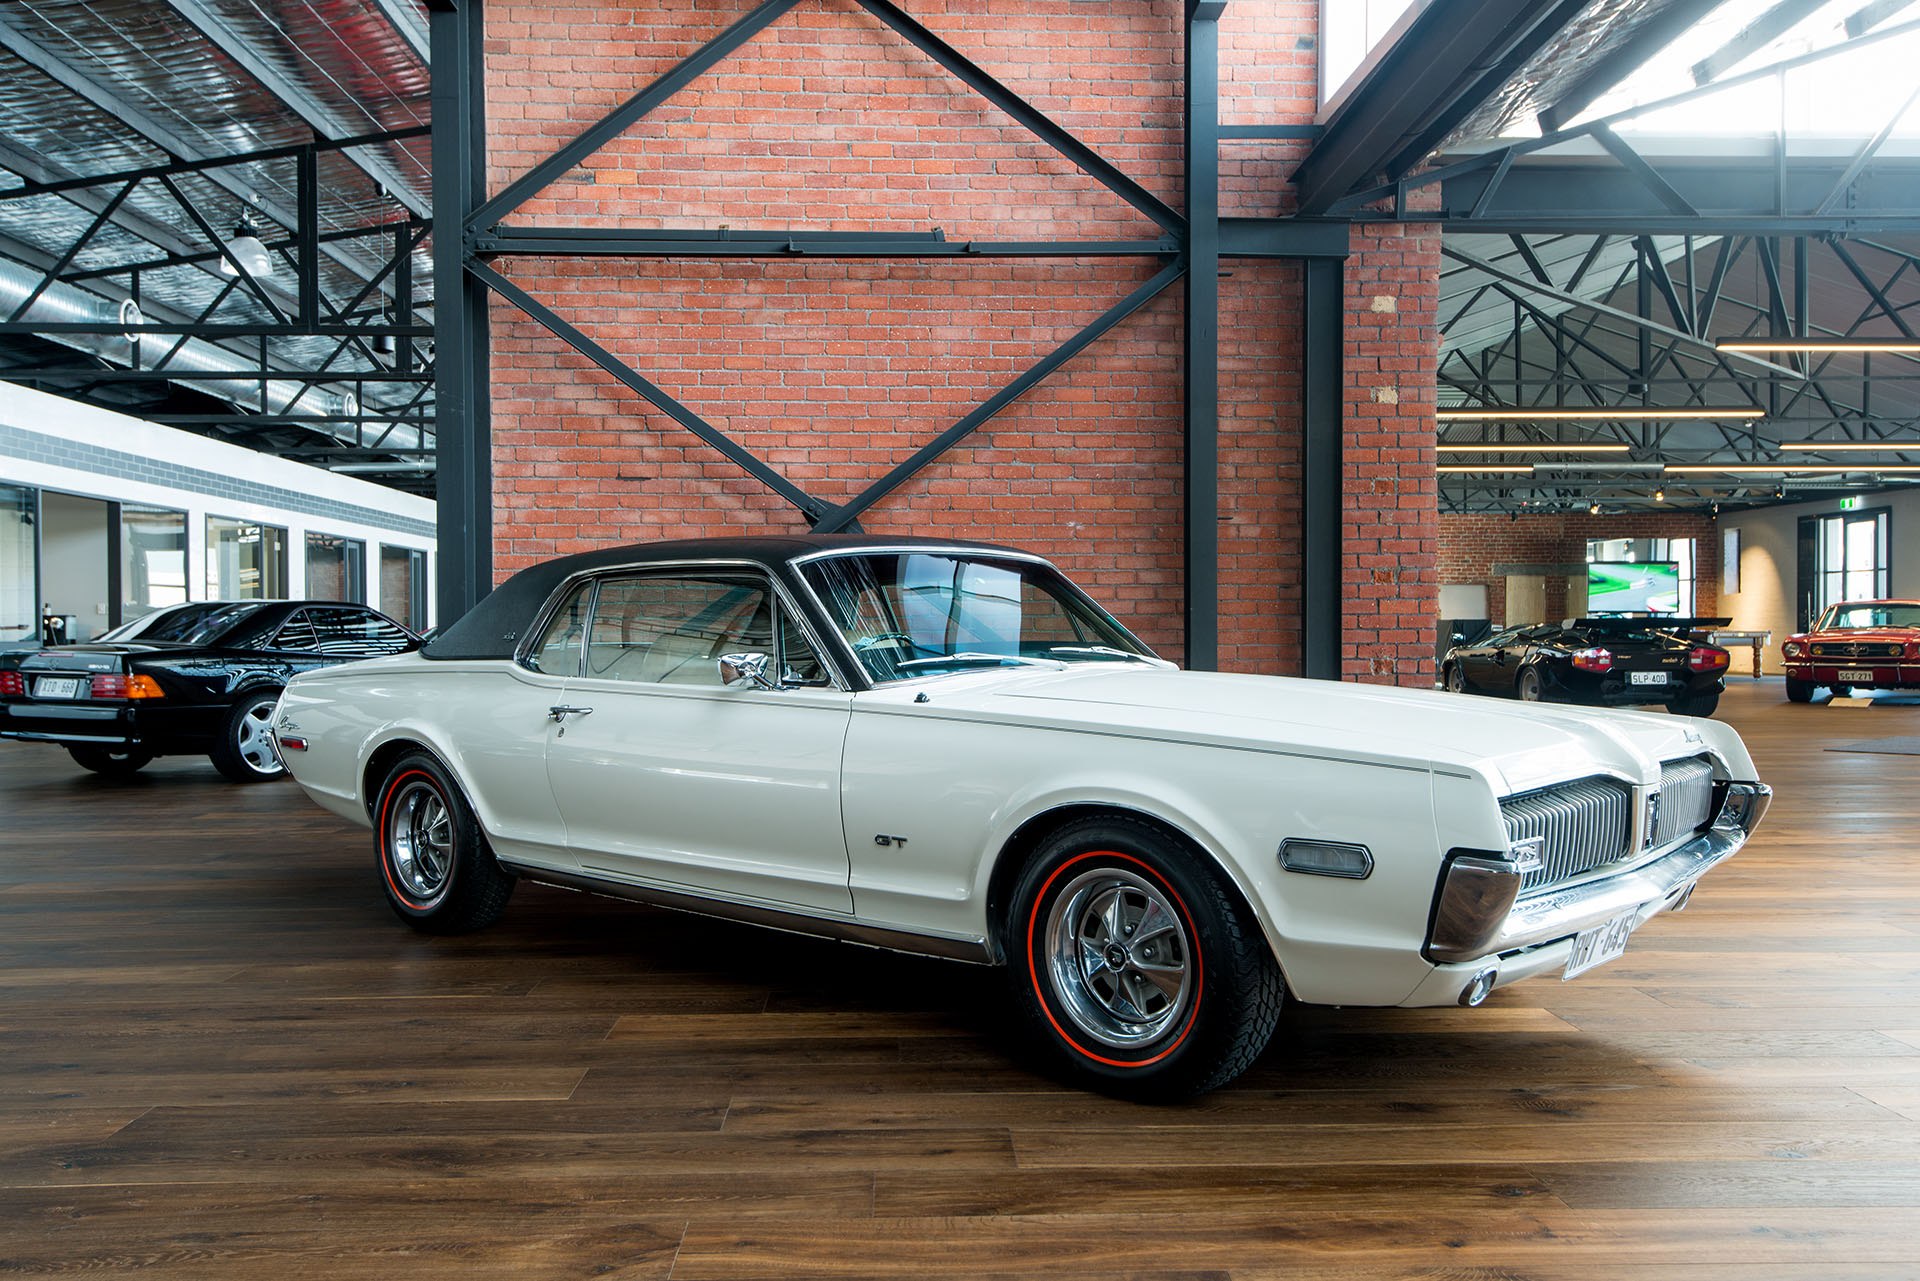 1968 mercury cougar coupe - richmonds - classic and prestige cars - storage and sales